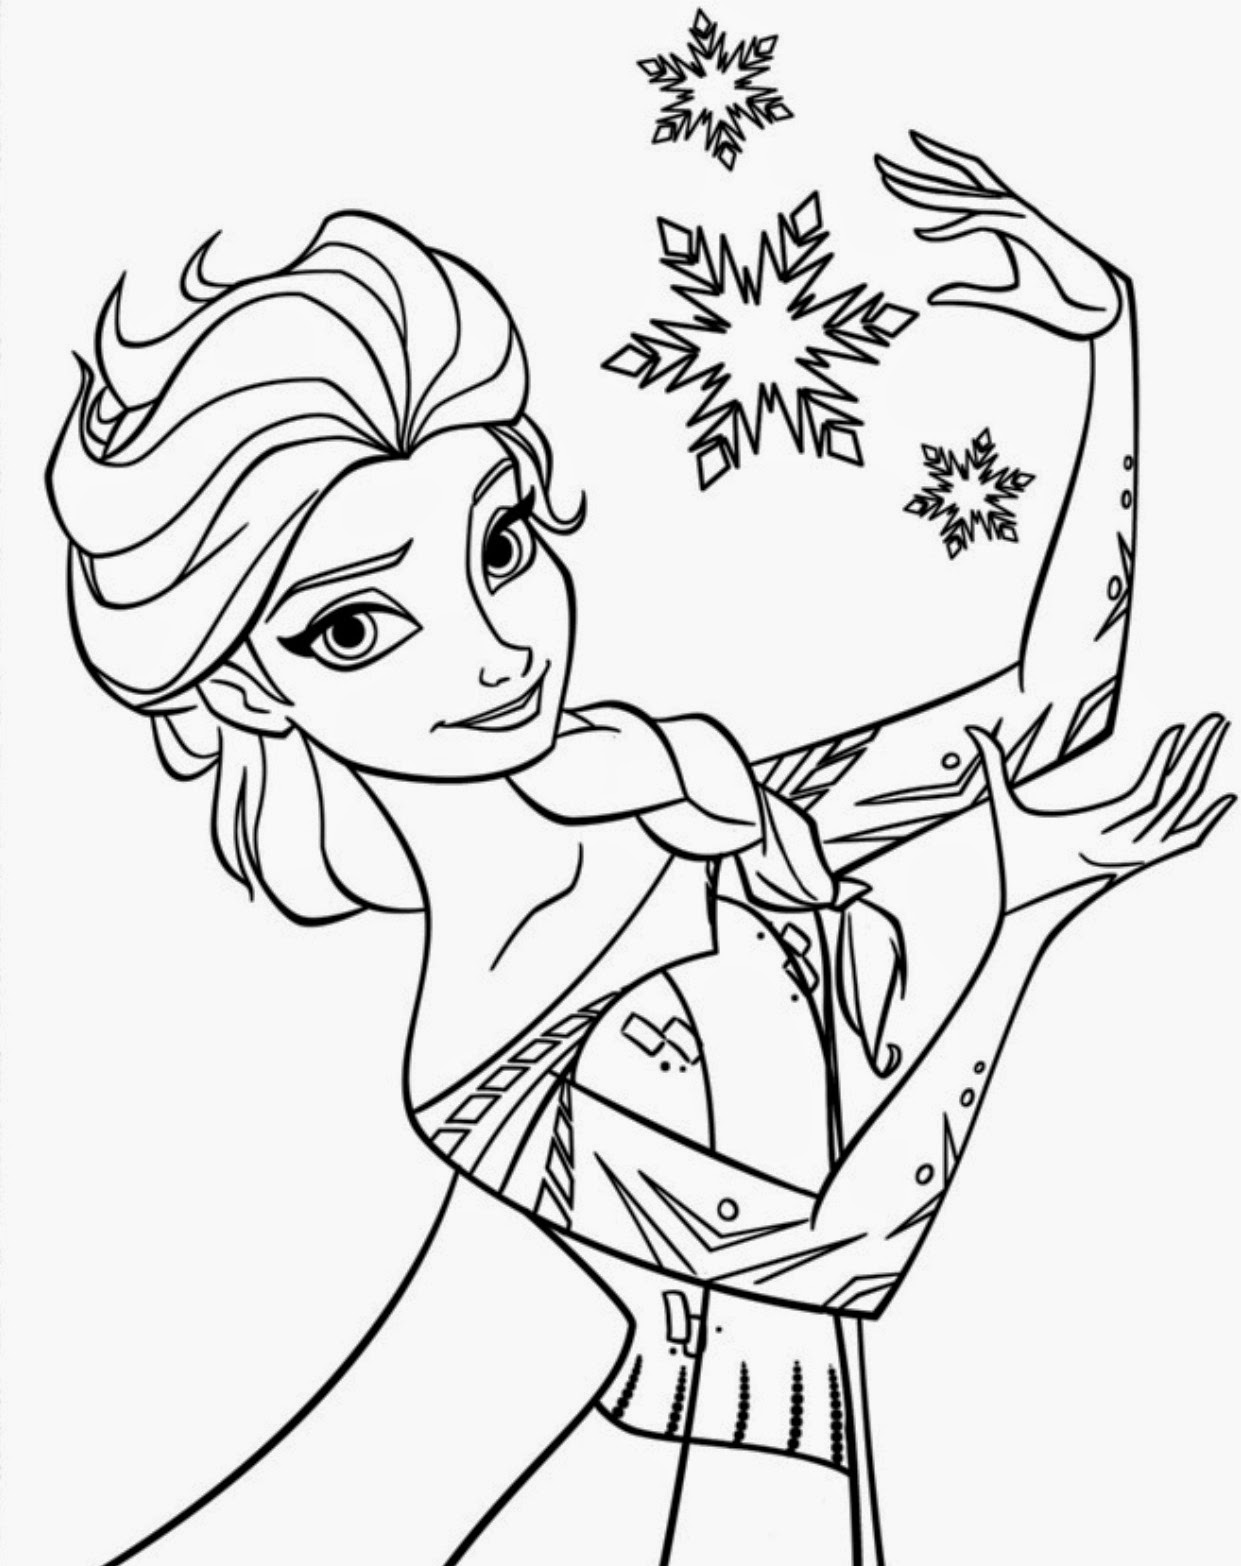 free coloring pages of disney characters disney coloring pages best coloring pages for kids of characters coloring free disney pages